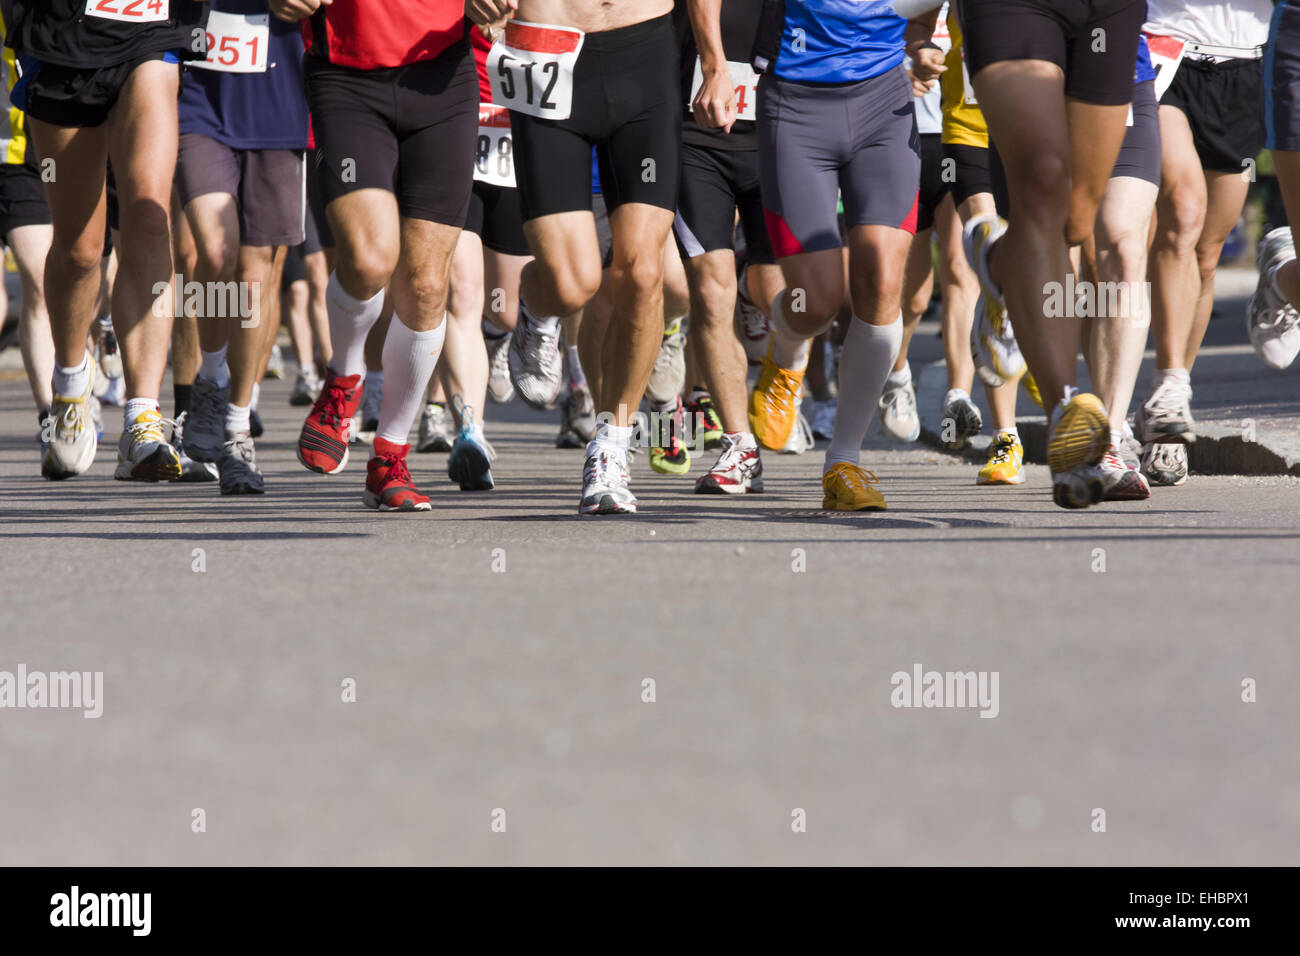 runners feet on asphalt - Stock Image